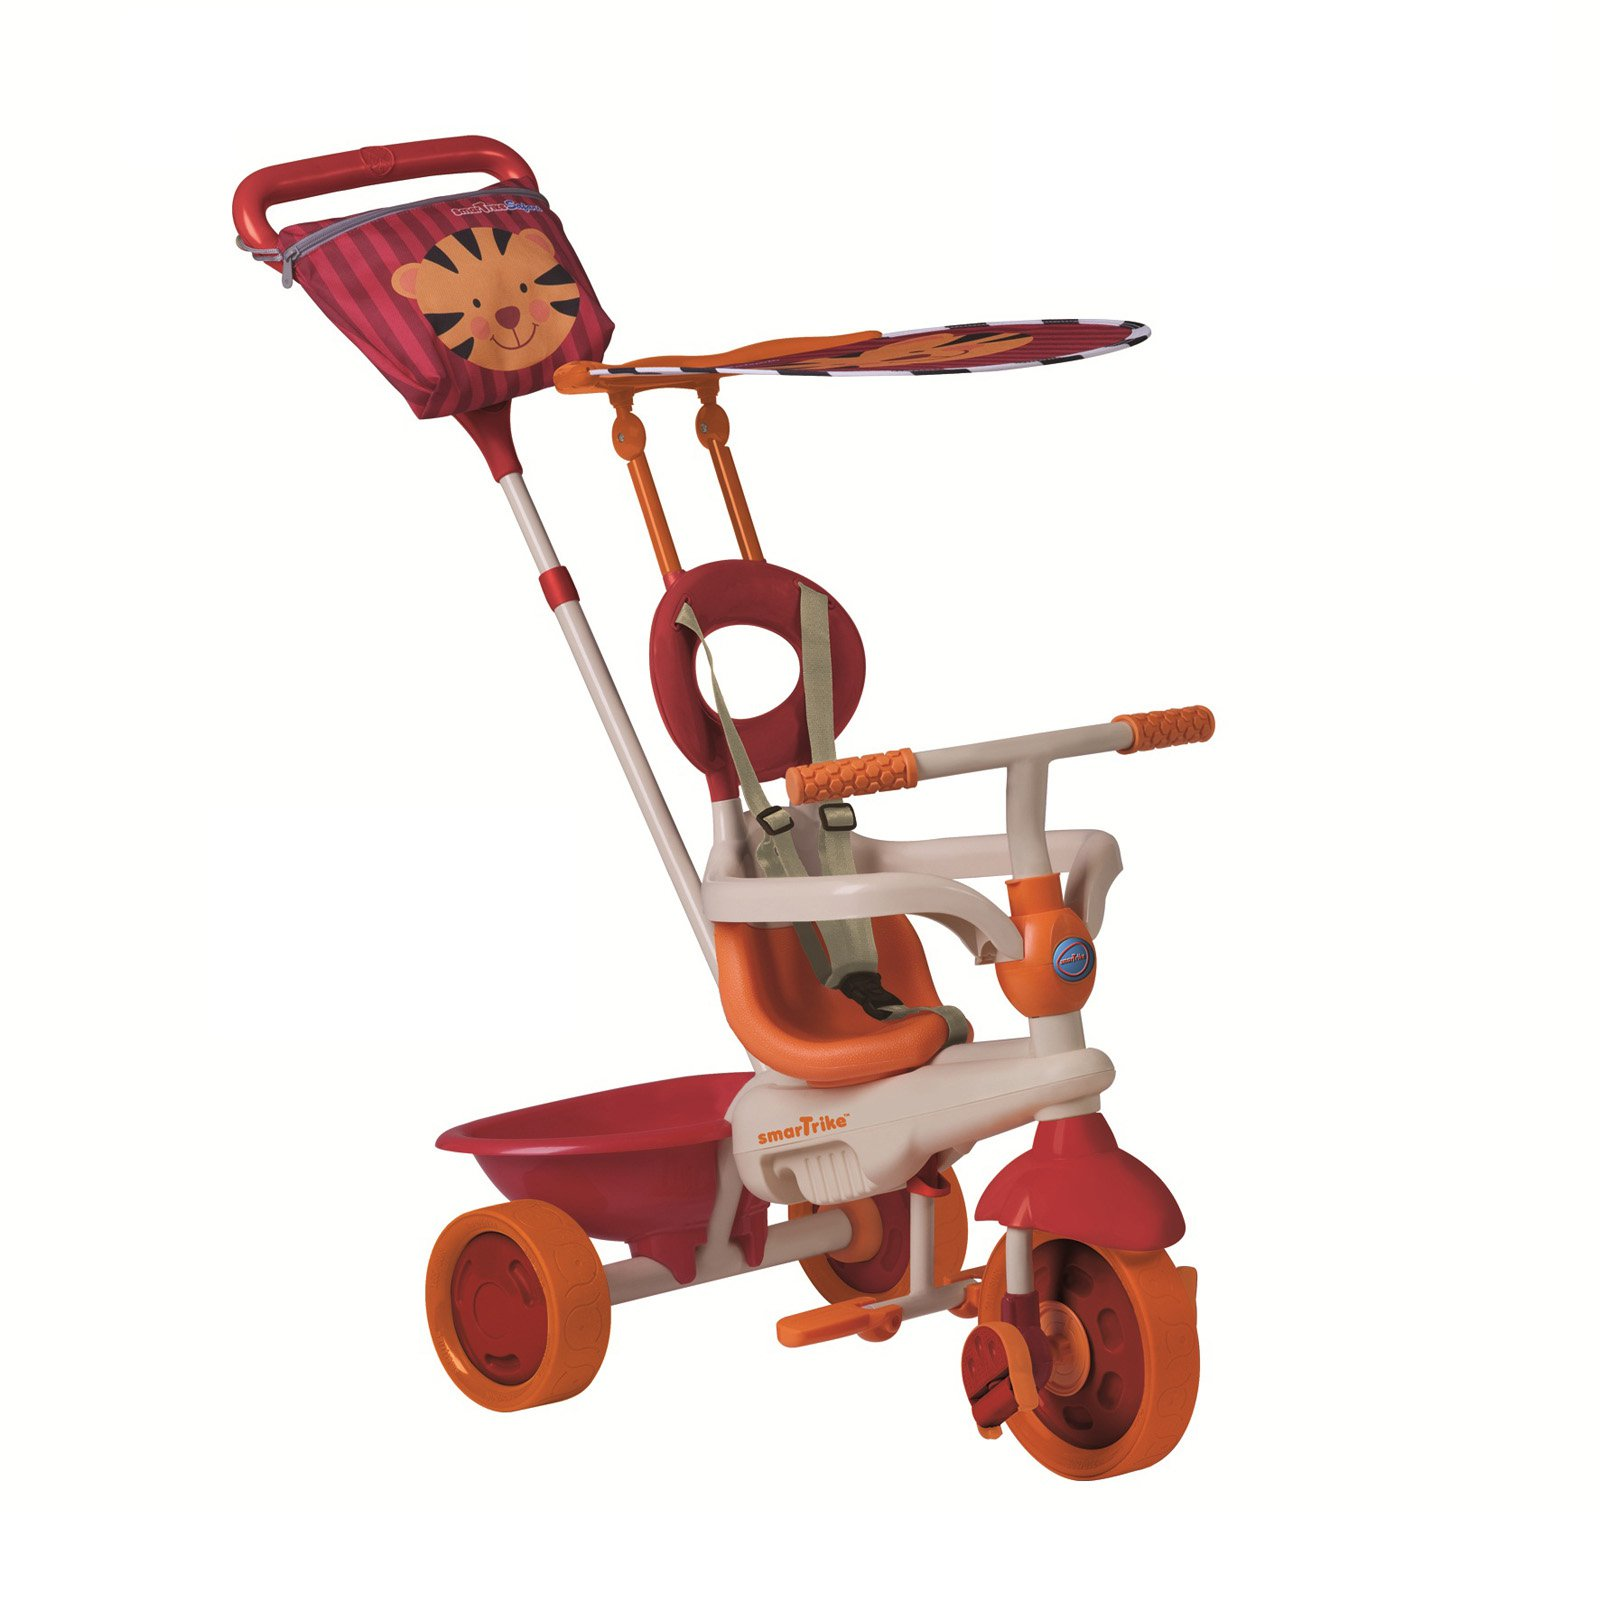 Smart Trike 4-in-1 Safari Tricycle - Red